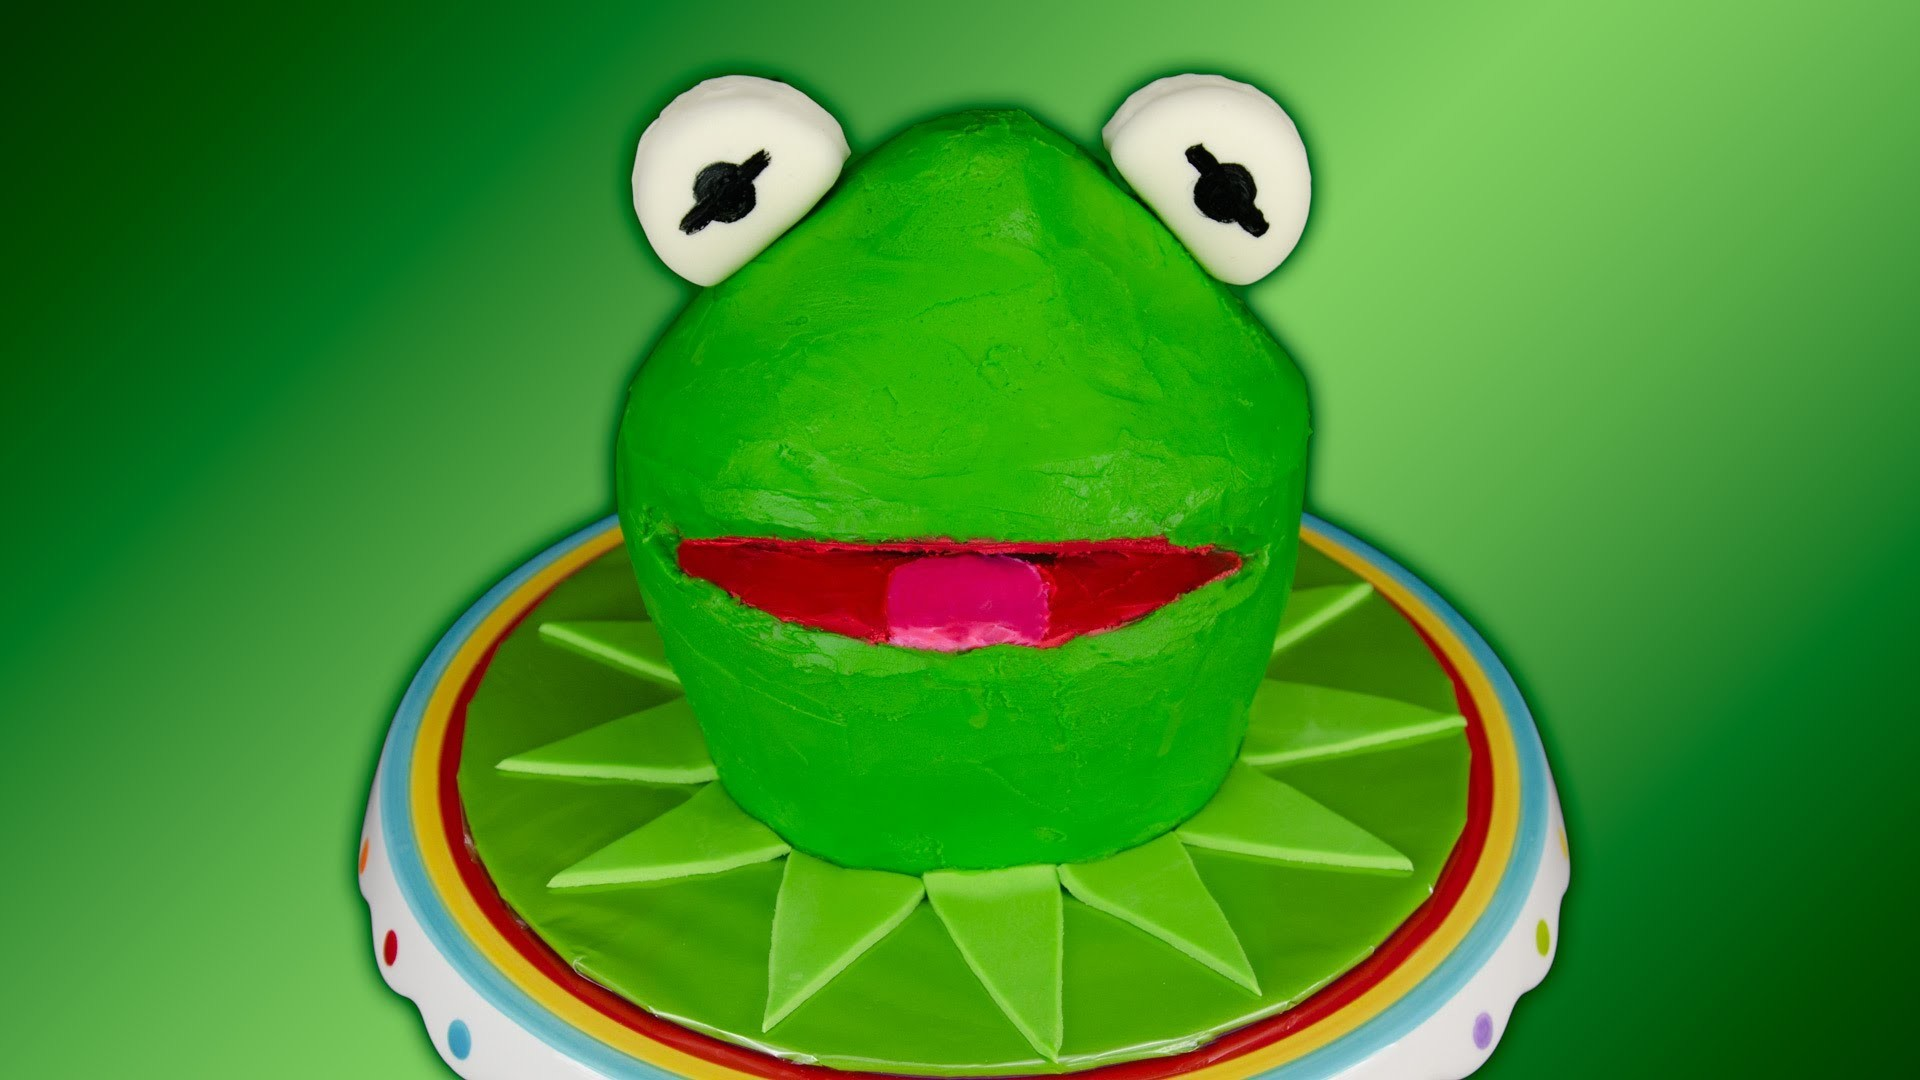 Kermit the Frog Cake / Muppets Cake using Green Velvet Cake by Cookies  Cupcakes and Cardio – YouTube